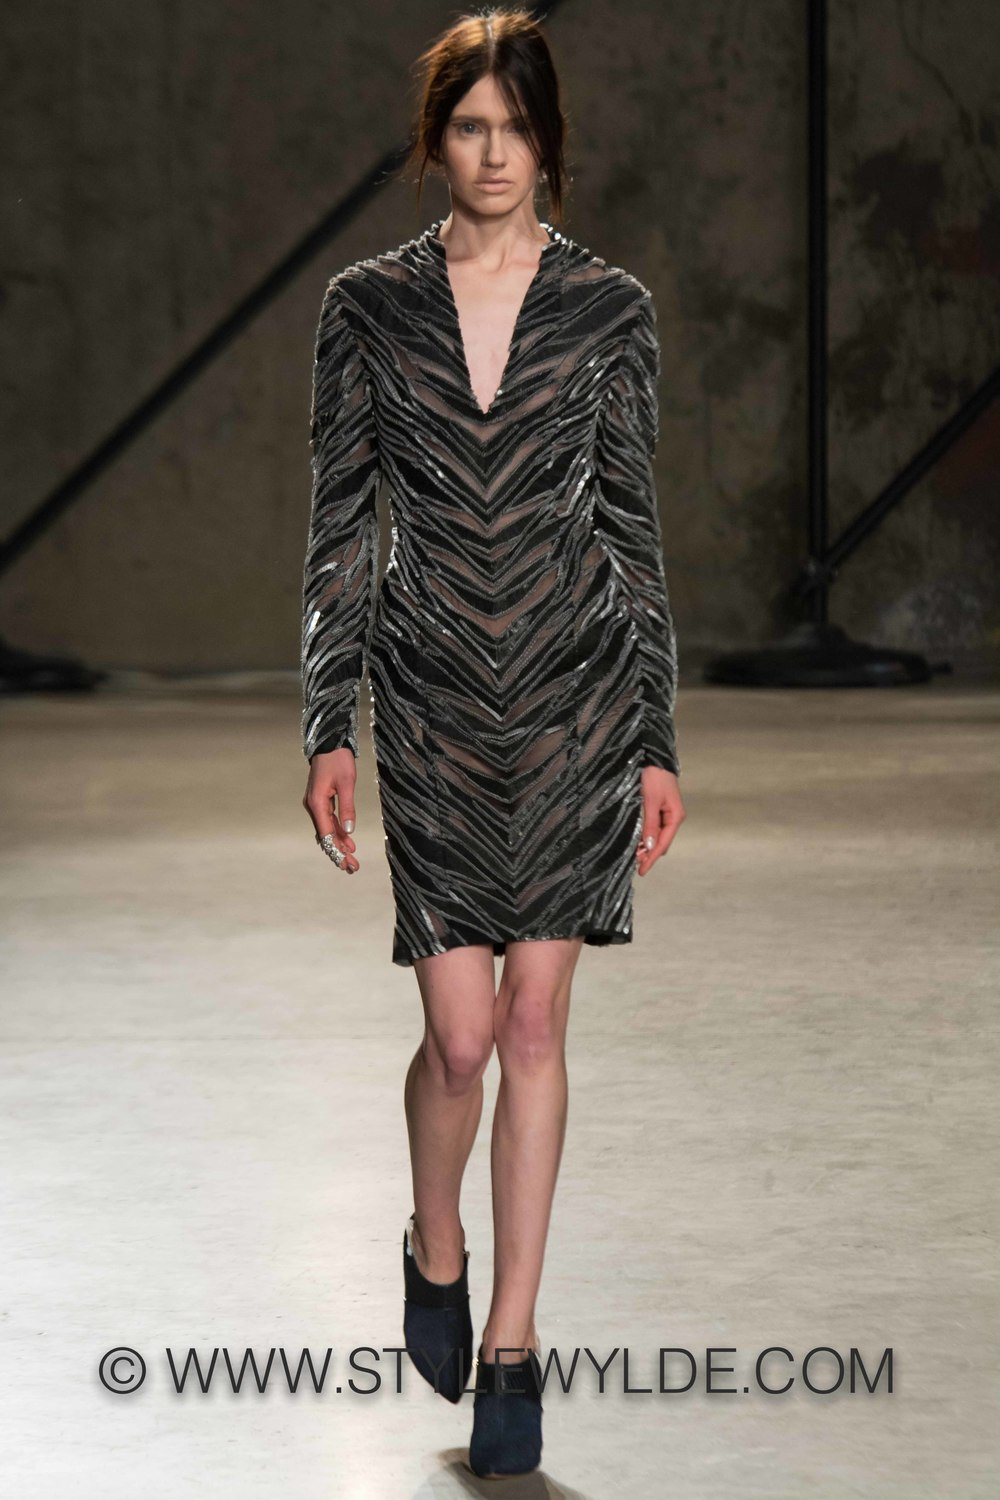 stylewylde_sally_lapointe_fw_2014-27.jpg